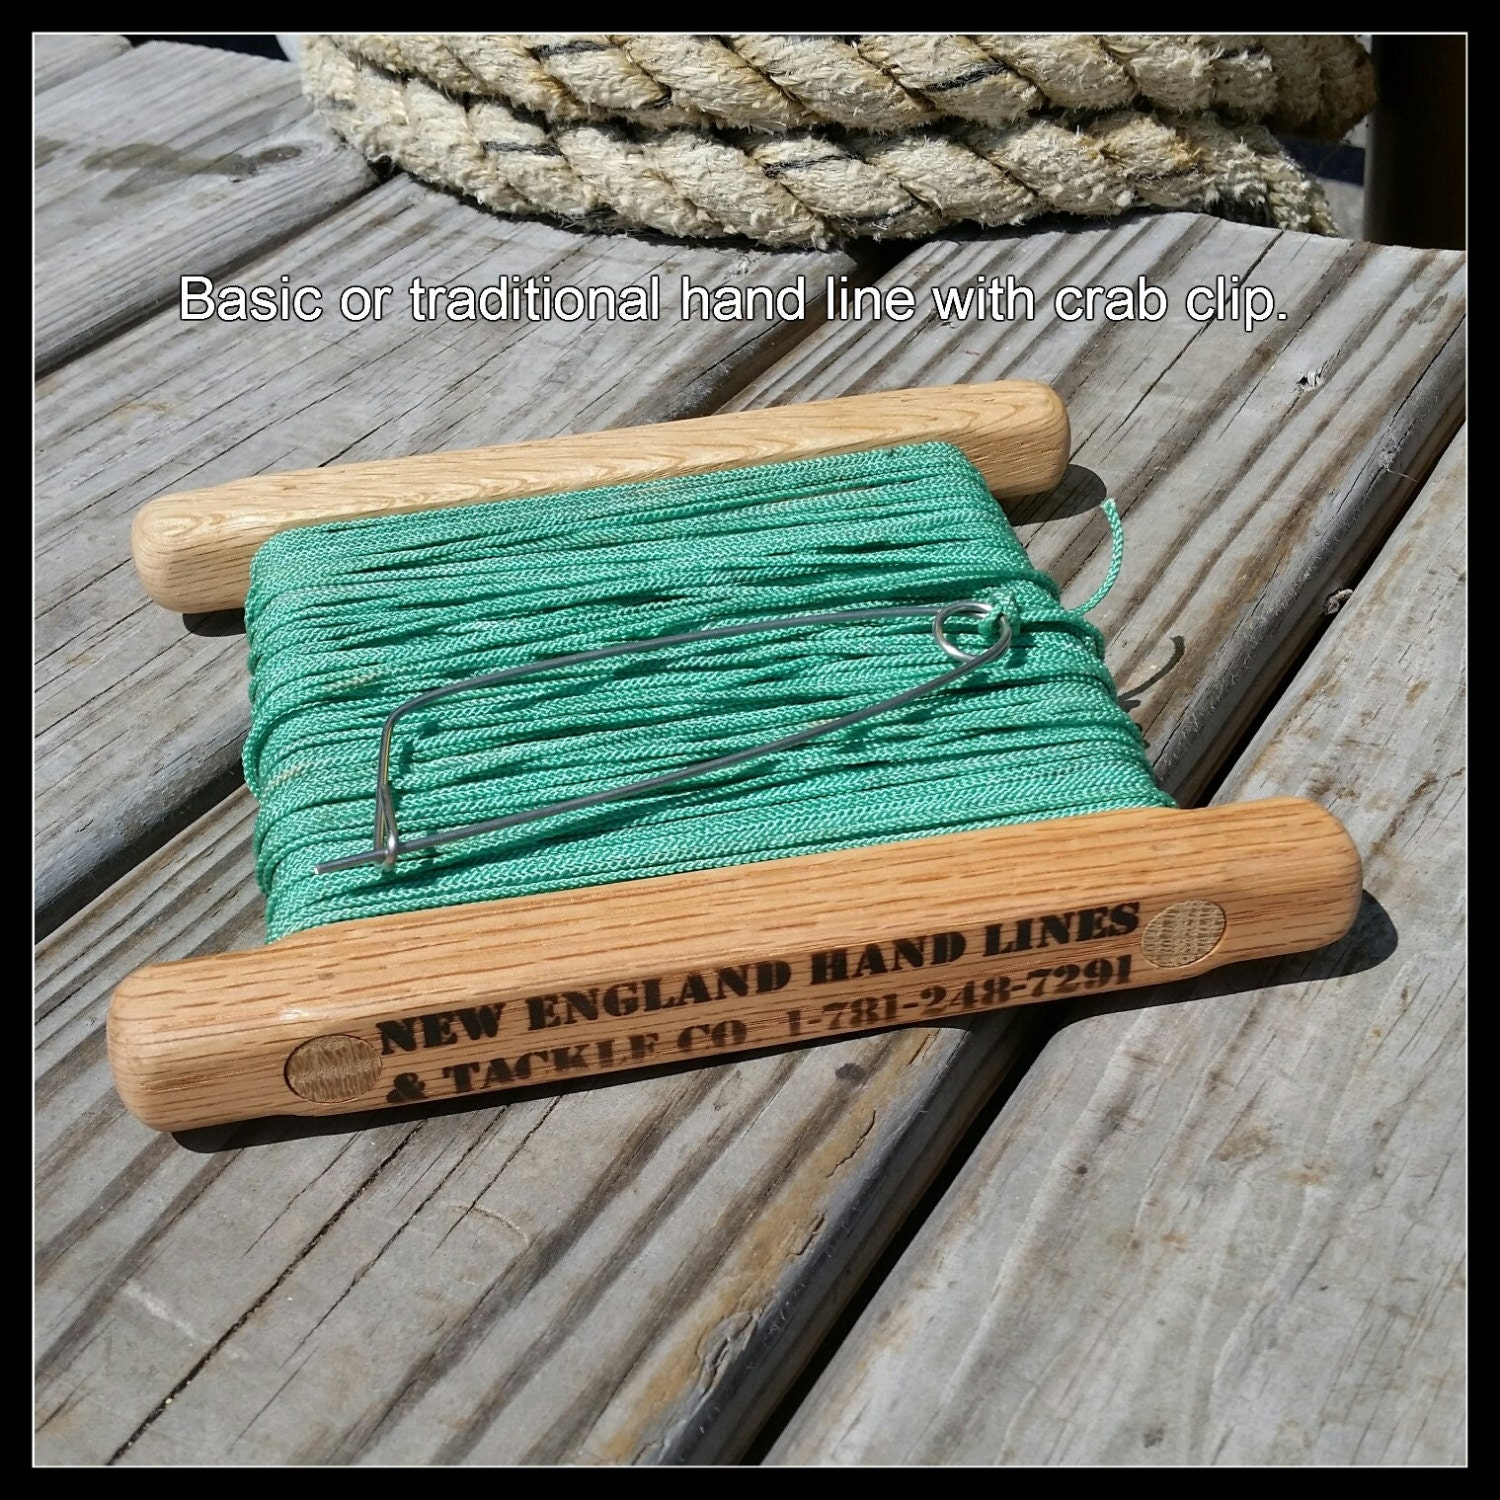 Fishing hand line drop line great for blue crabs for Hand line fishing